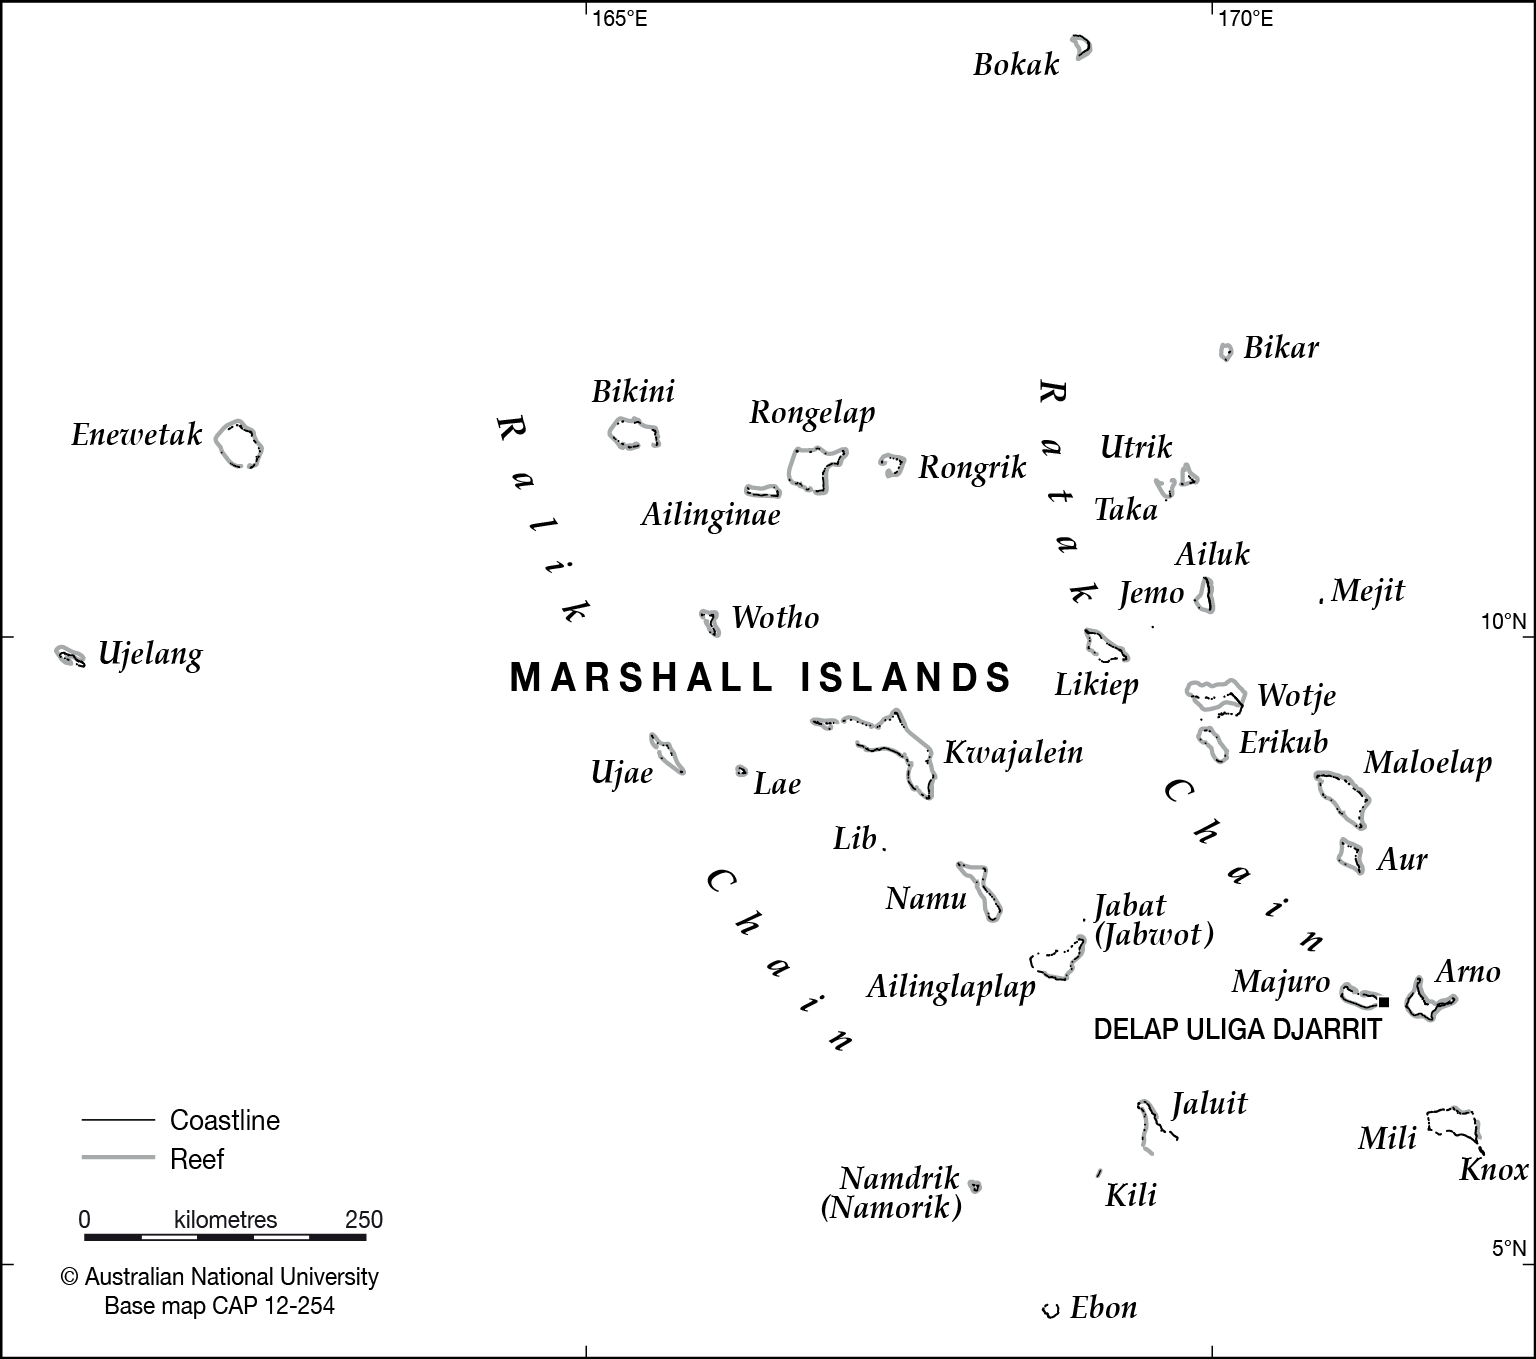 Marshall Islands base - CartoGIS Services Maps Online - ANU